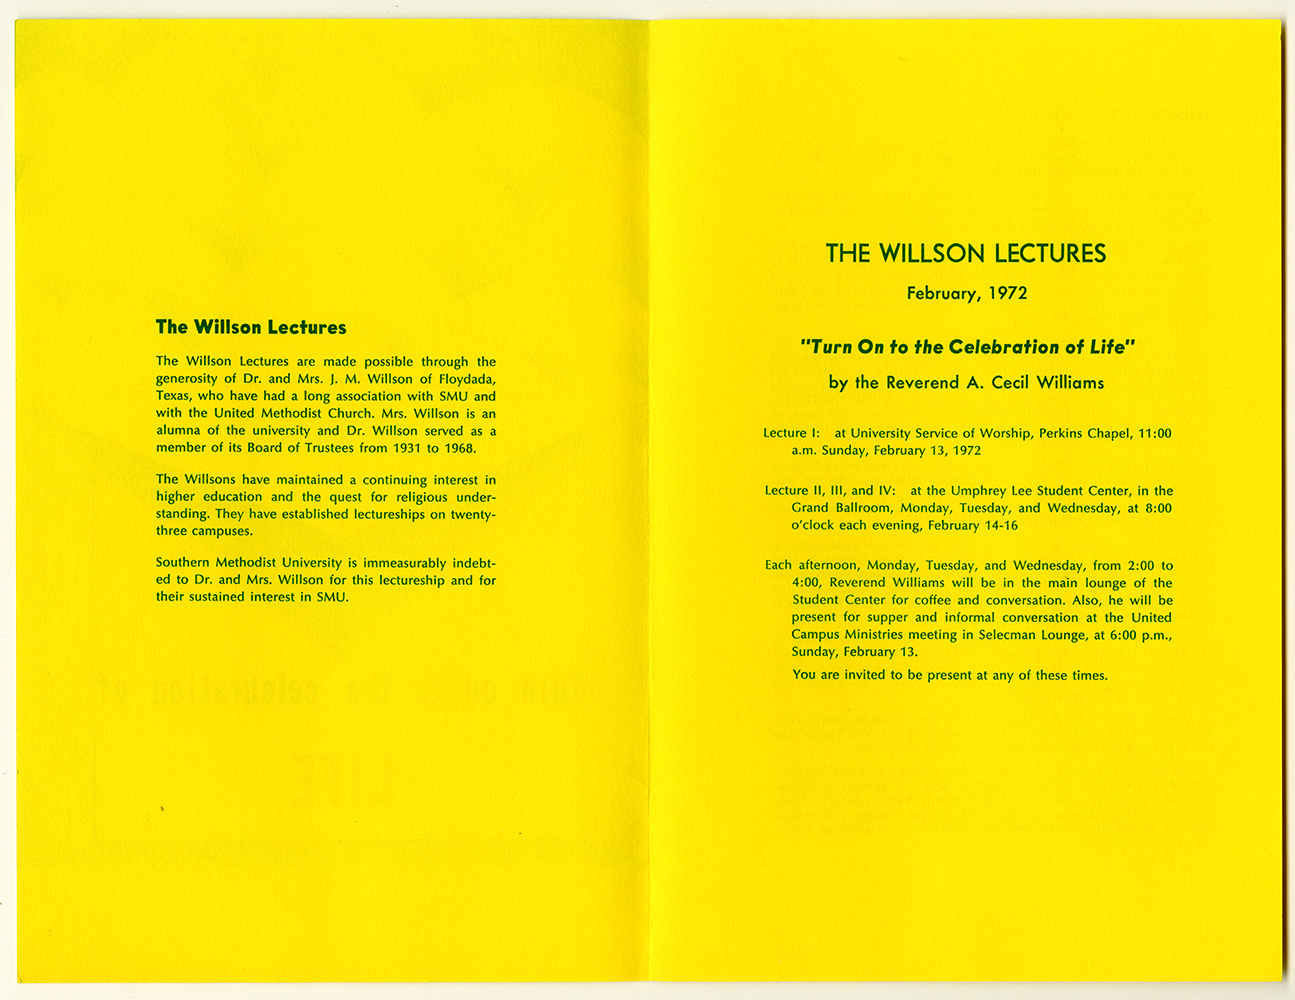 turn on to the celebration of life willson lectures program southern methodist university february 1972 cecil williams - Quest Bergroer Sessel